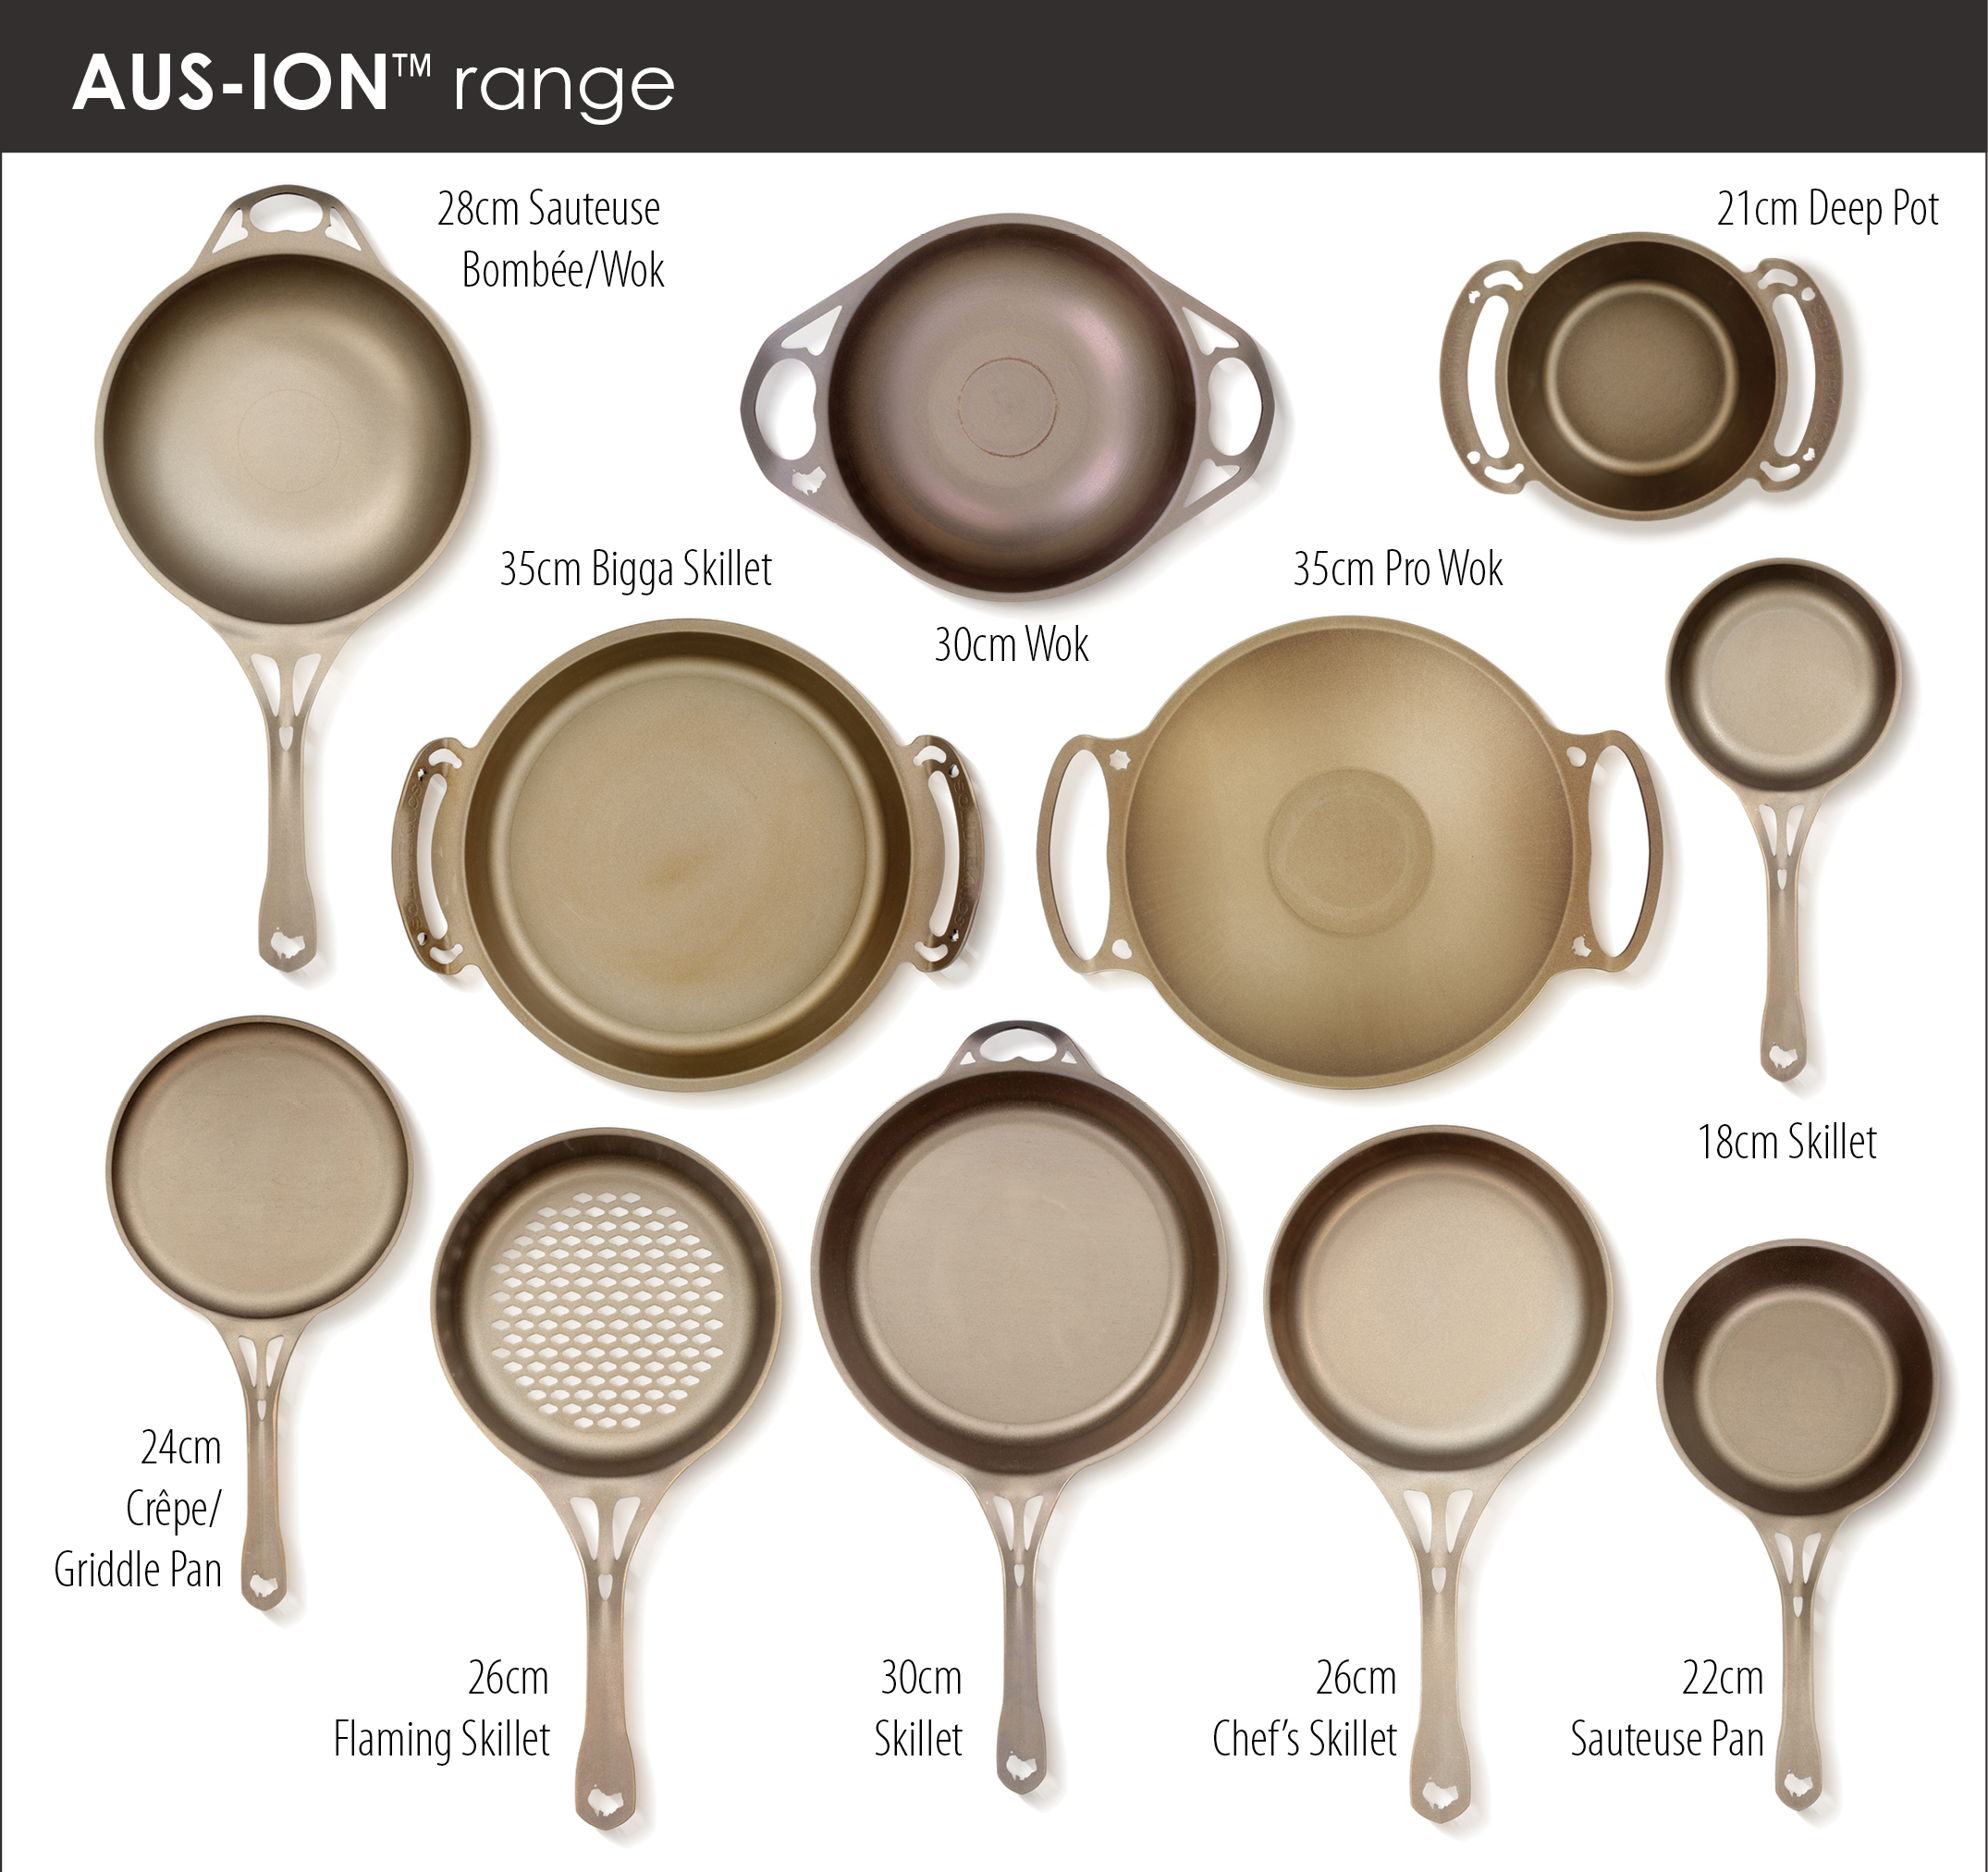 AUS-ION™ 28cm SATIN Iron Sauteuse Bombée/Wok. 'Bombed' deep sauteuse body with long handle. 2.5mm thick.  AUS-ION™ 30cm SATIN Iron Wok, dual handle, flat bottom, high wall. 2.5mm thick for fast and even heating.  AUS-ION™ 21cm SATIN Iron Deep Pot. 3mm thick.  AUS-ION™ 35cm SATIN Bigga Skillet. Aussie engineered dual handle formed from 4mm thick wrought iron.  AUS-ION™ 35cm SATIN Wok, dual handle, flat bottom, low wall for easier tool access. 2.5mm thick conductive iron.  AUS-ION™ 18cm SATIN Iron Skillet, 3mm thick. Ideal single meal pan, and great natural low-stick breakfast pan!  AUS-ION™ 24cm SATIN Crêpe/Griddle pan. Exceptional crêpe or griddle pan, 4mm iron for ideal heat distribution.  AUS-ION™ 26cm SATIN Iron 'Flaming' Skillet. Developed with Neil Perry & chefs for the ultimate durable mesh pan.  AUS-ION™ 30cm SATIN Skillet with helper handle, 3mm thick for even heating. A big & serious Chef or Family pan.  AUS-ION™ 26cm SATIN Skillet, 3mm thick iron for even heating. The 'workhorse' Chef's restaurant pan.  AUS-ION™ 22cm SATIN Iron Sauteuse pan, 3mm thick for even heating. Convenient size, higher walls for sauteing.